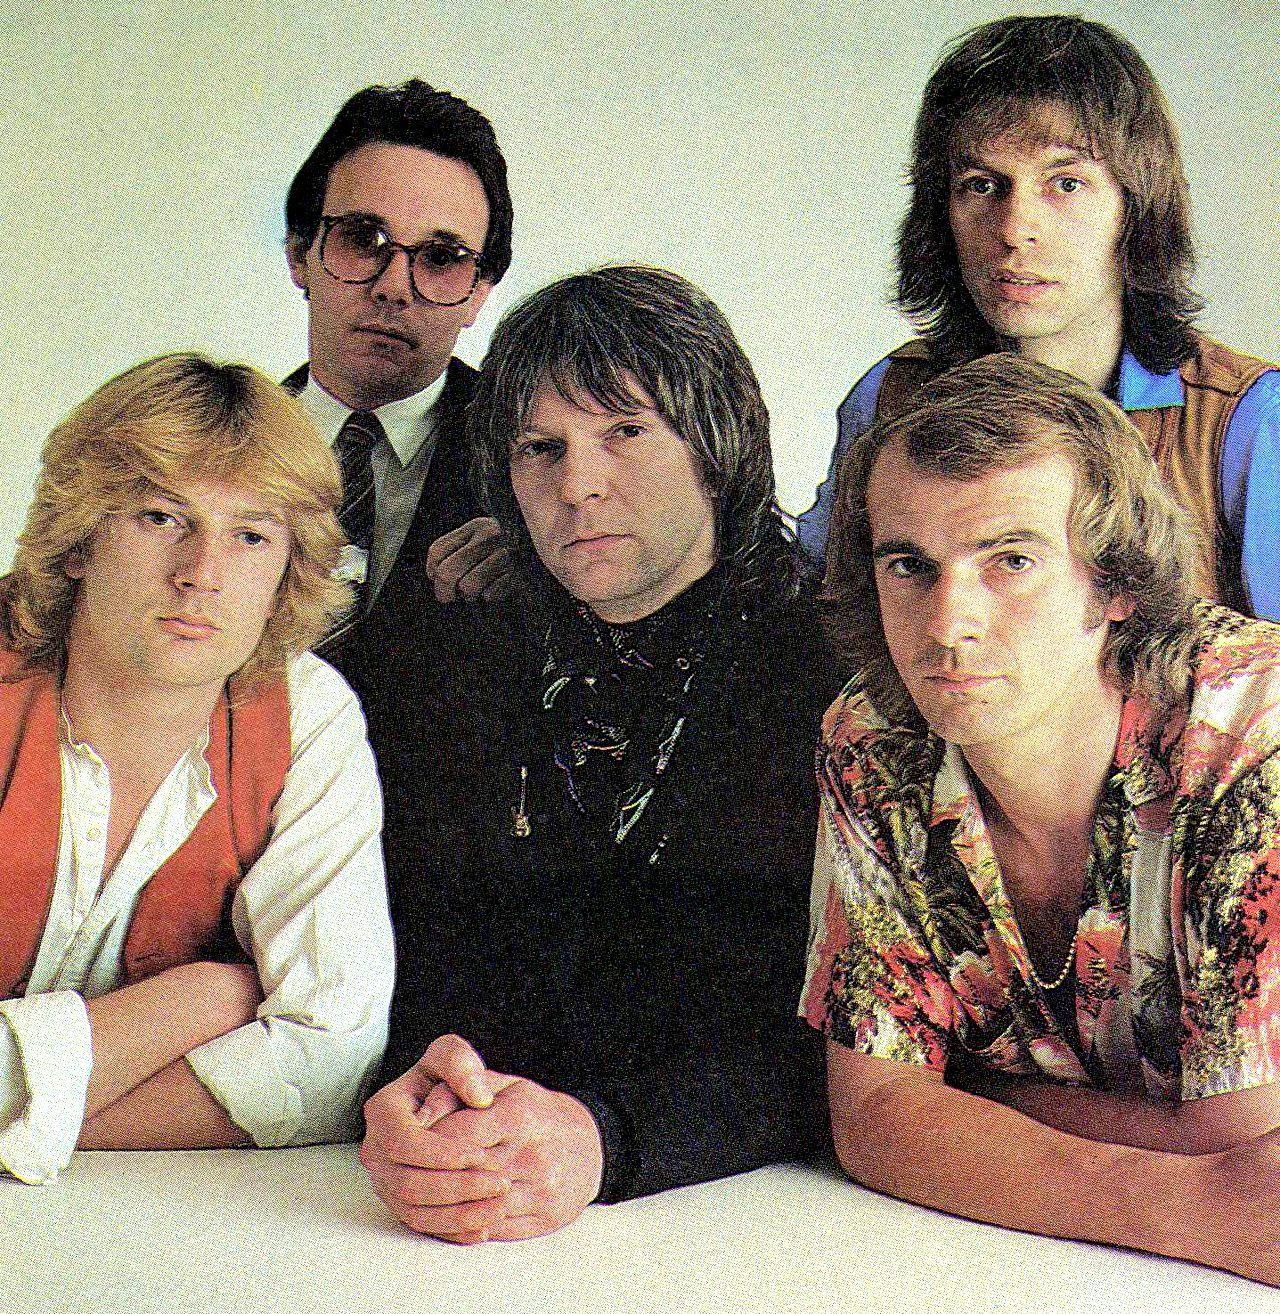 My favorite YES era and release. Drama. The very cool part is got to work with everyone in this picture many many times. My friends are awesome! #geoffdownes #trevorhorn #chrissquire #alanwhite #stevehowe #davidmaidapresents #dmaidapr @yesofficial @SteveHoweOne @asiageoff https://t.co/wNx6ak8TGd